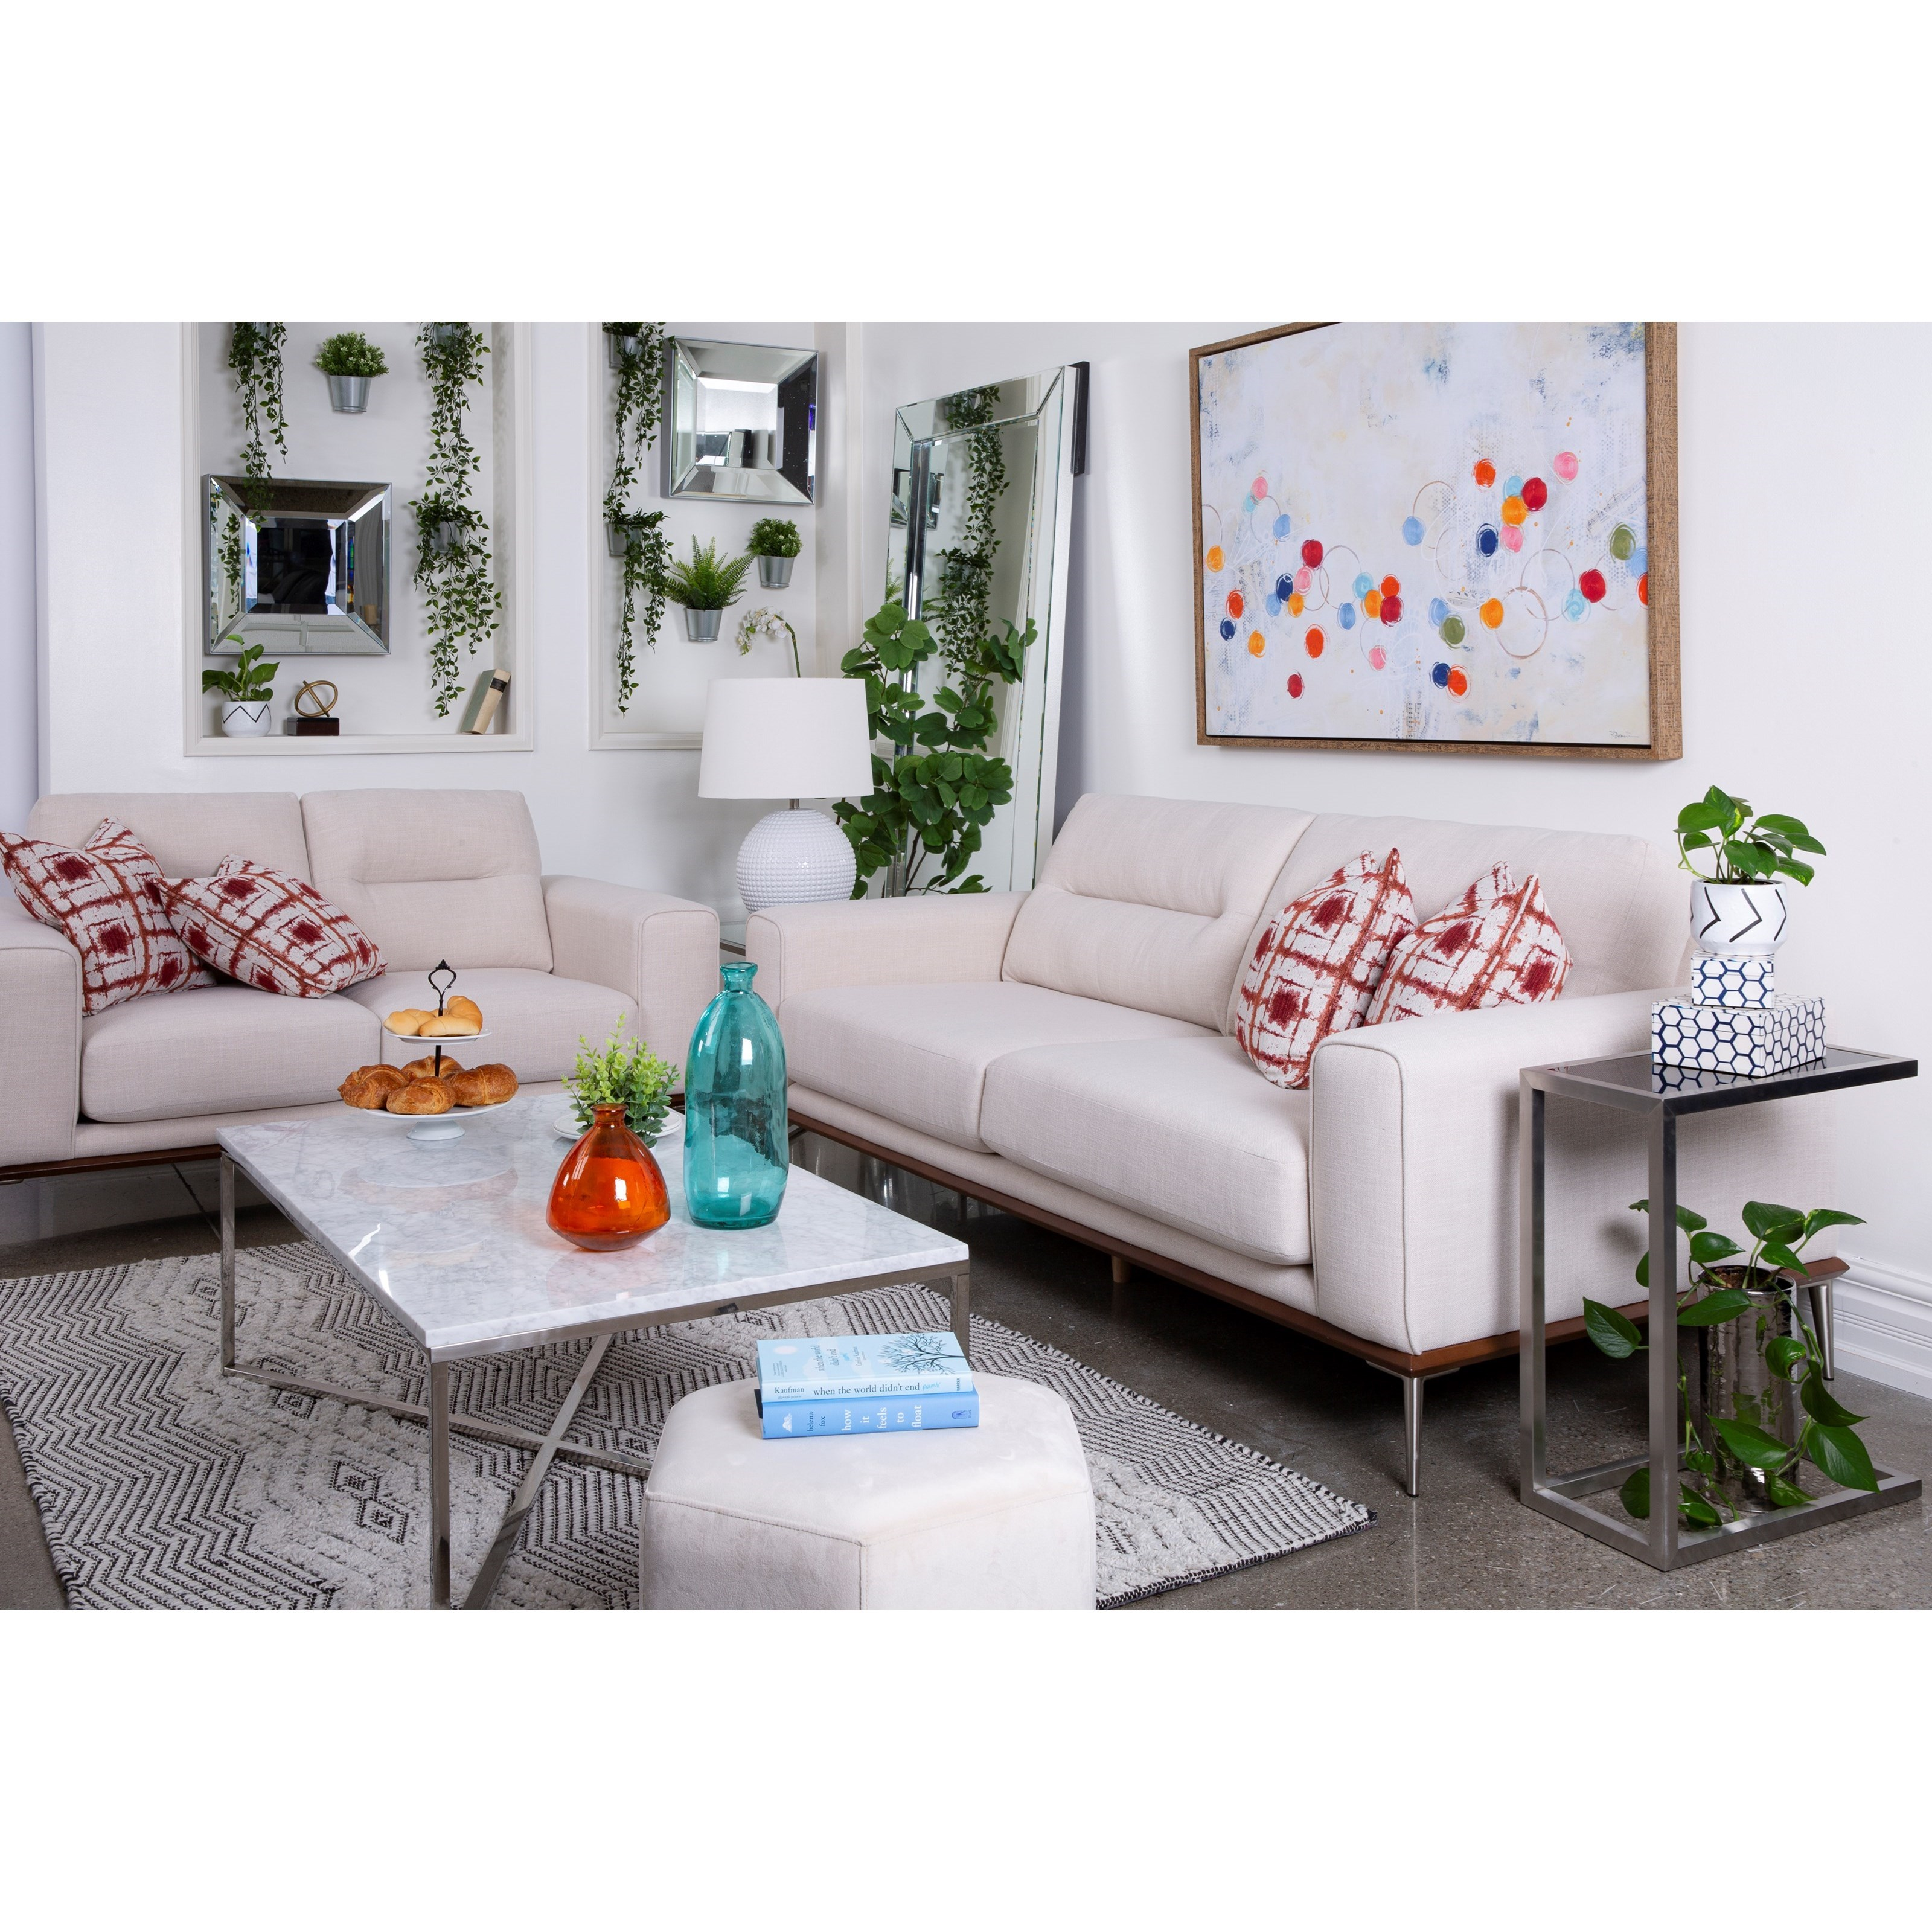 2030 Living Room Group by Decor-Rest at Reid's Furniture